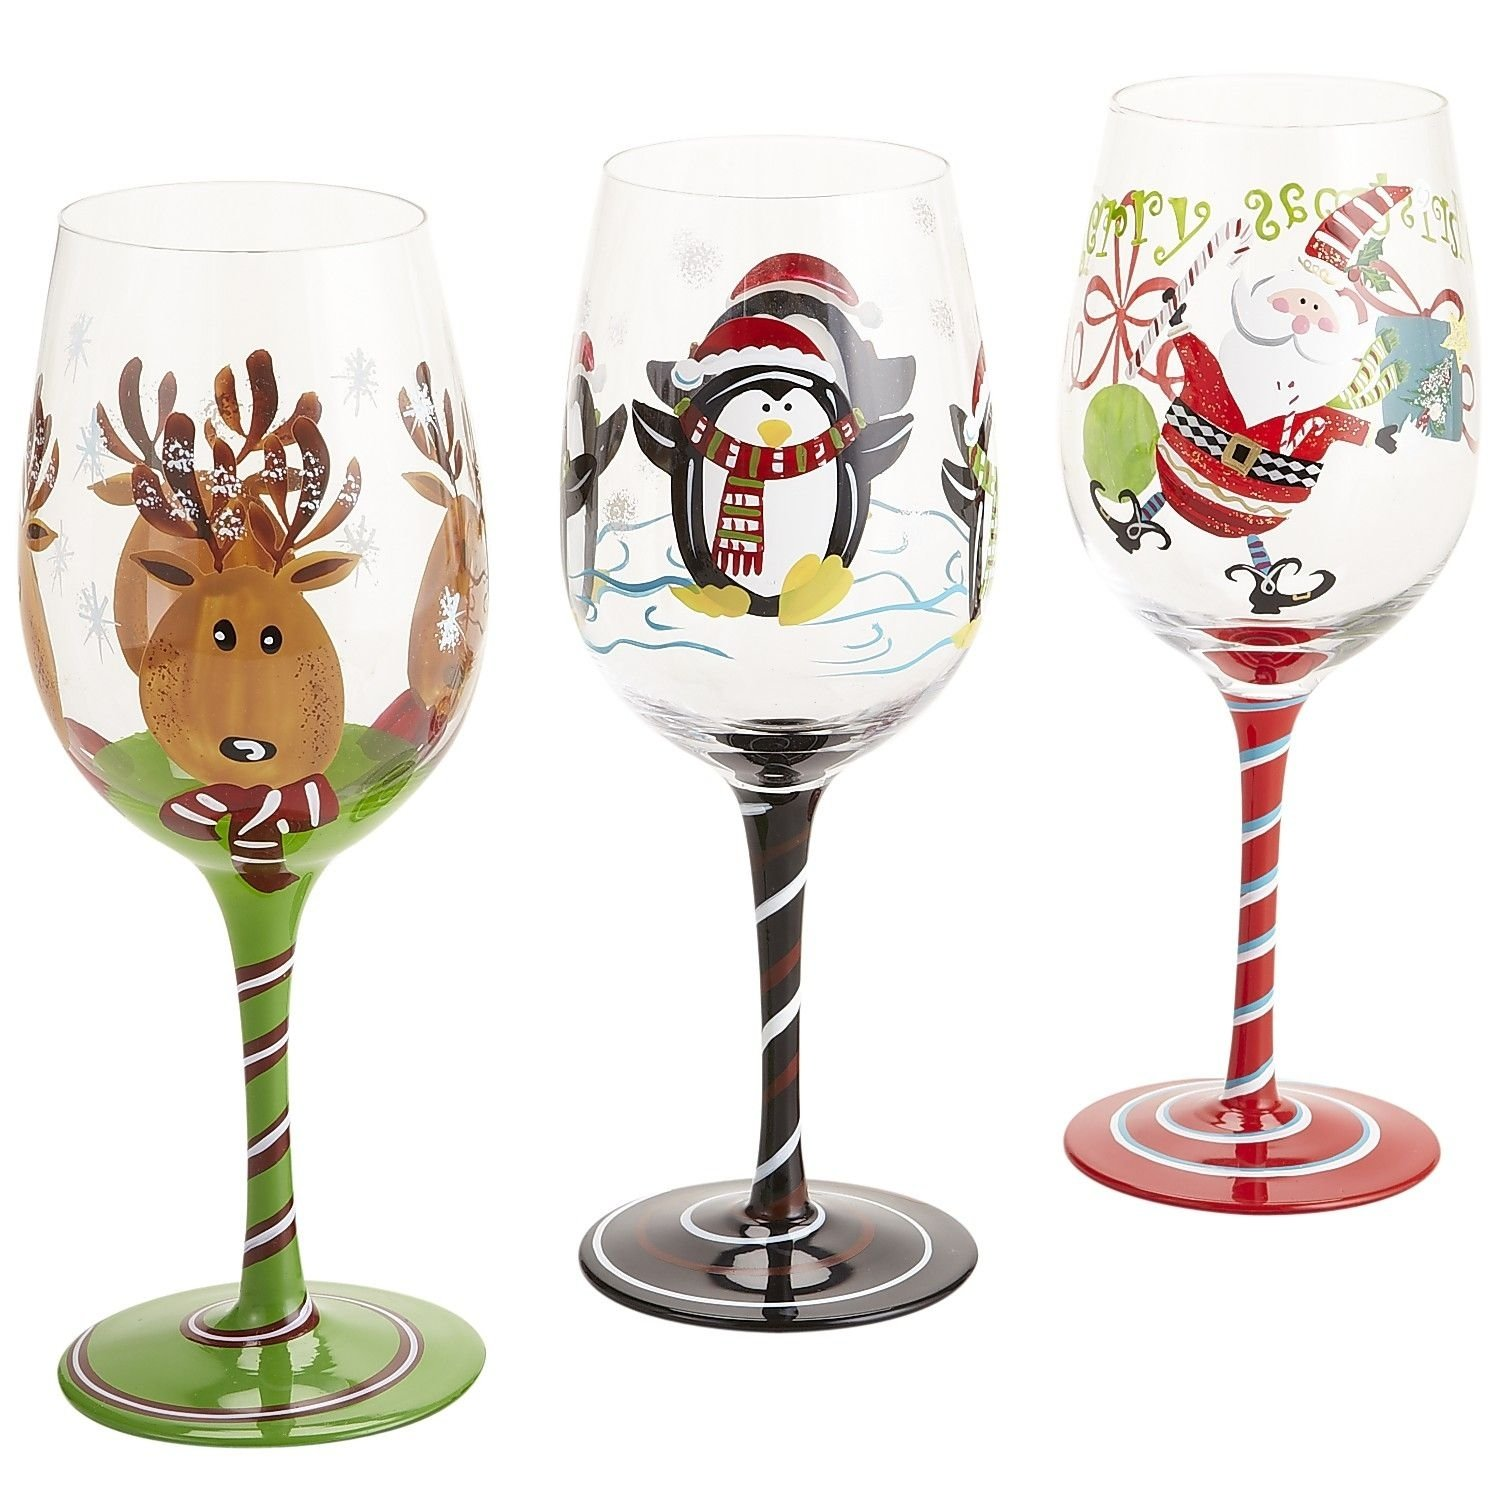 10 Fabulous Hand Painted Wine Glasses Ideas the greatest glass painting ideas e2 80 94 inspirational home 2020